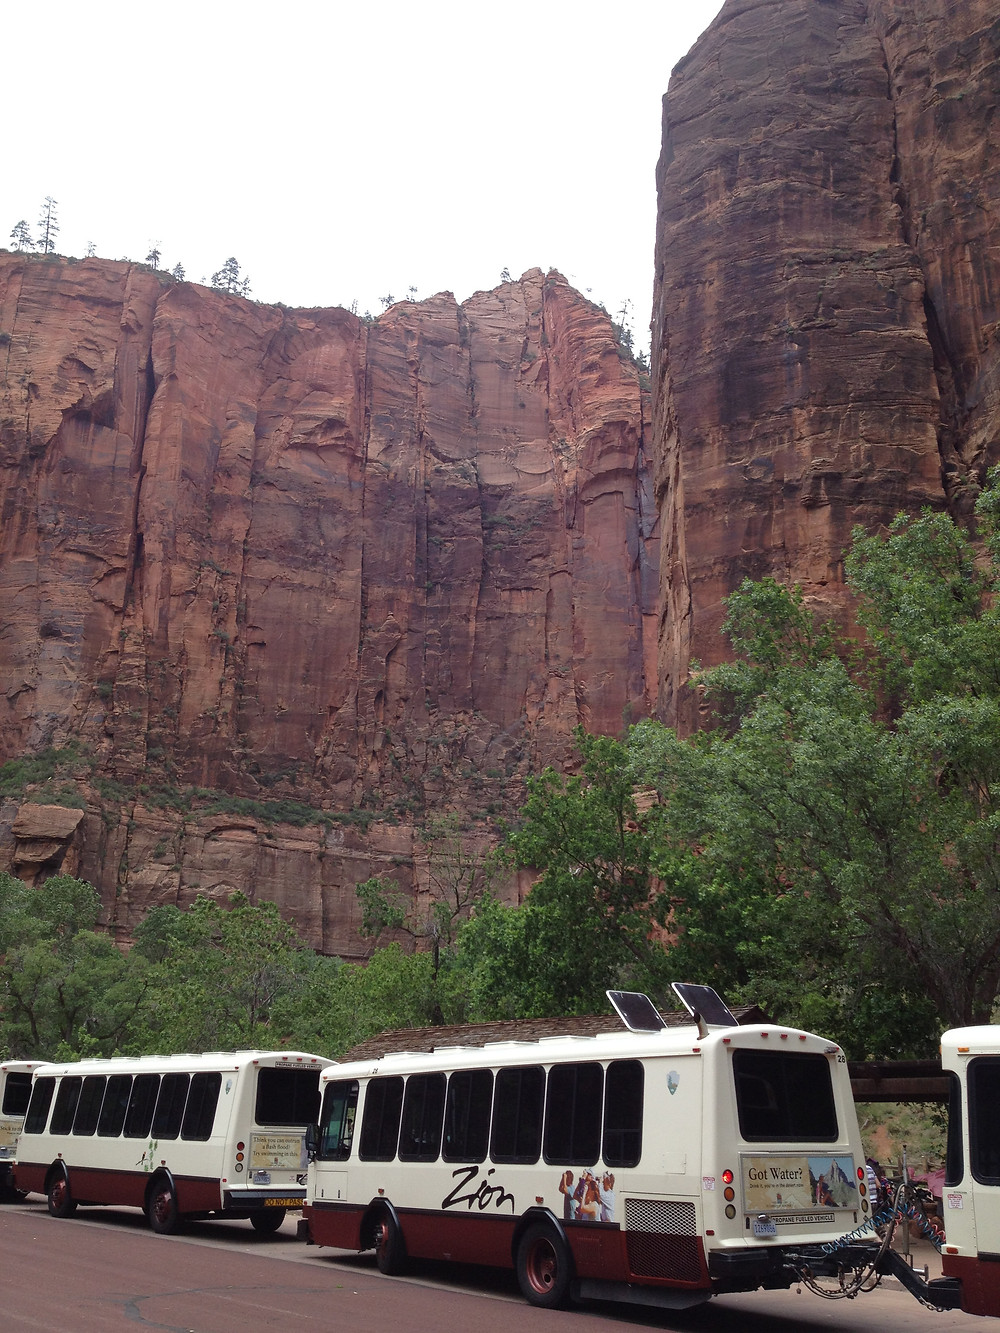 Zion National Park uses shuttles to help visitors access the park from Spring to Fall